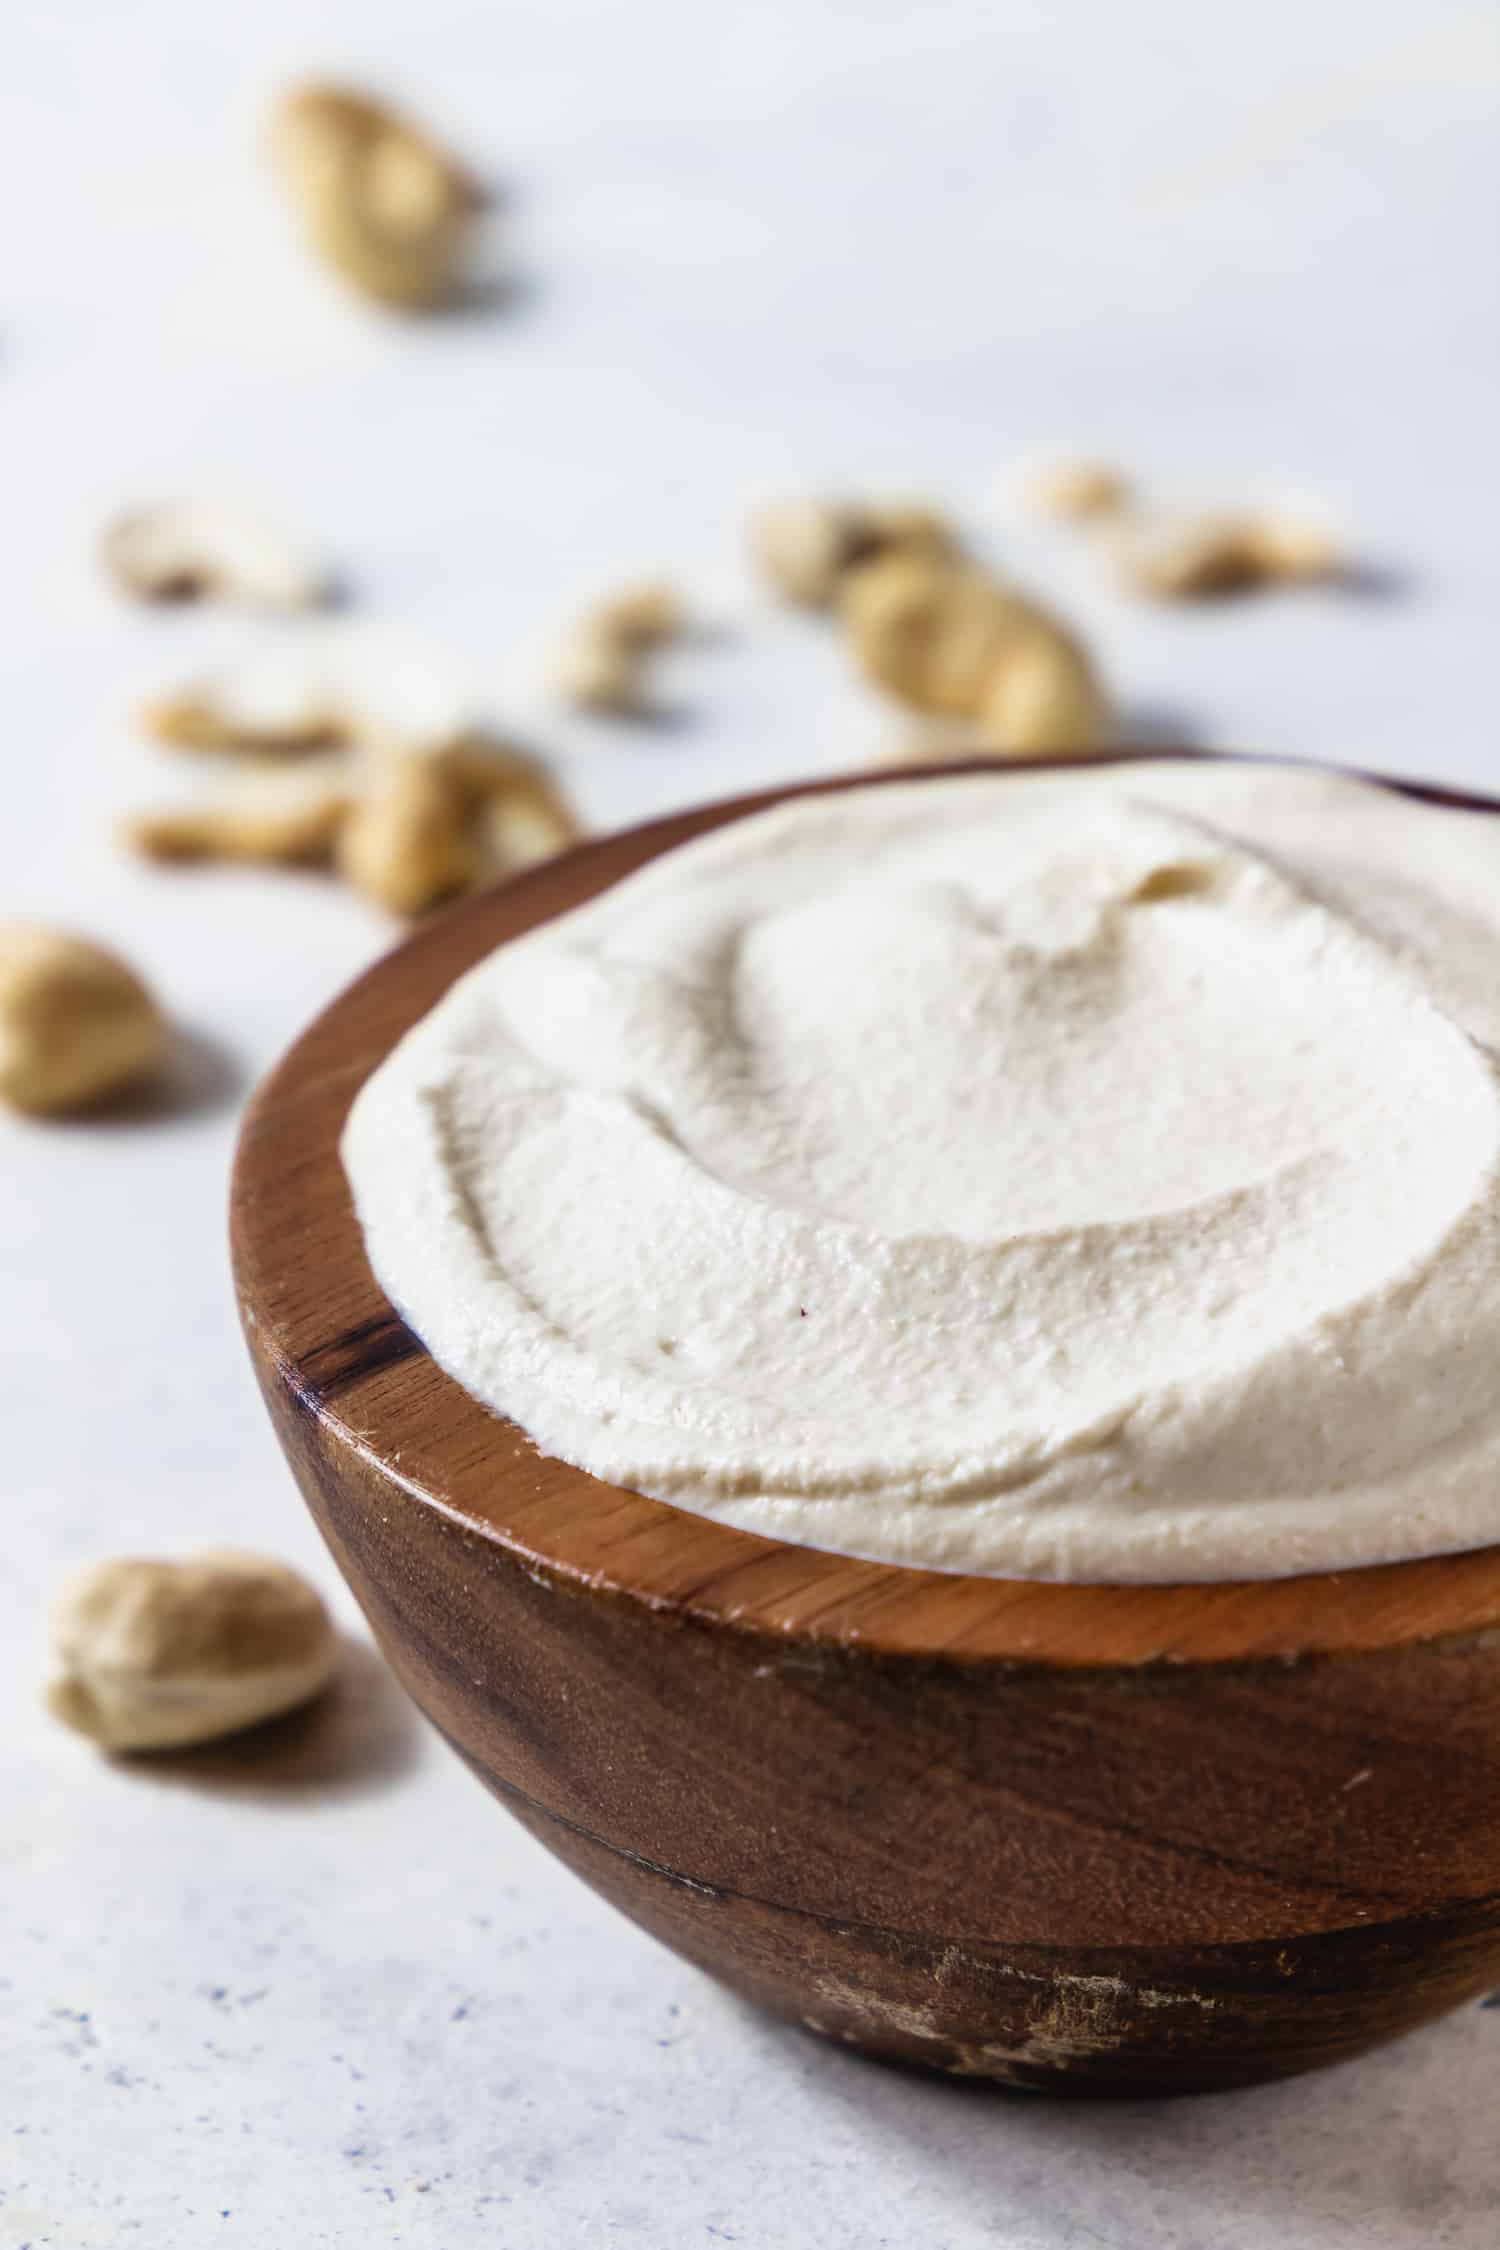 cashew cream in a wooden bowl